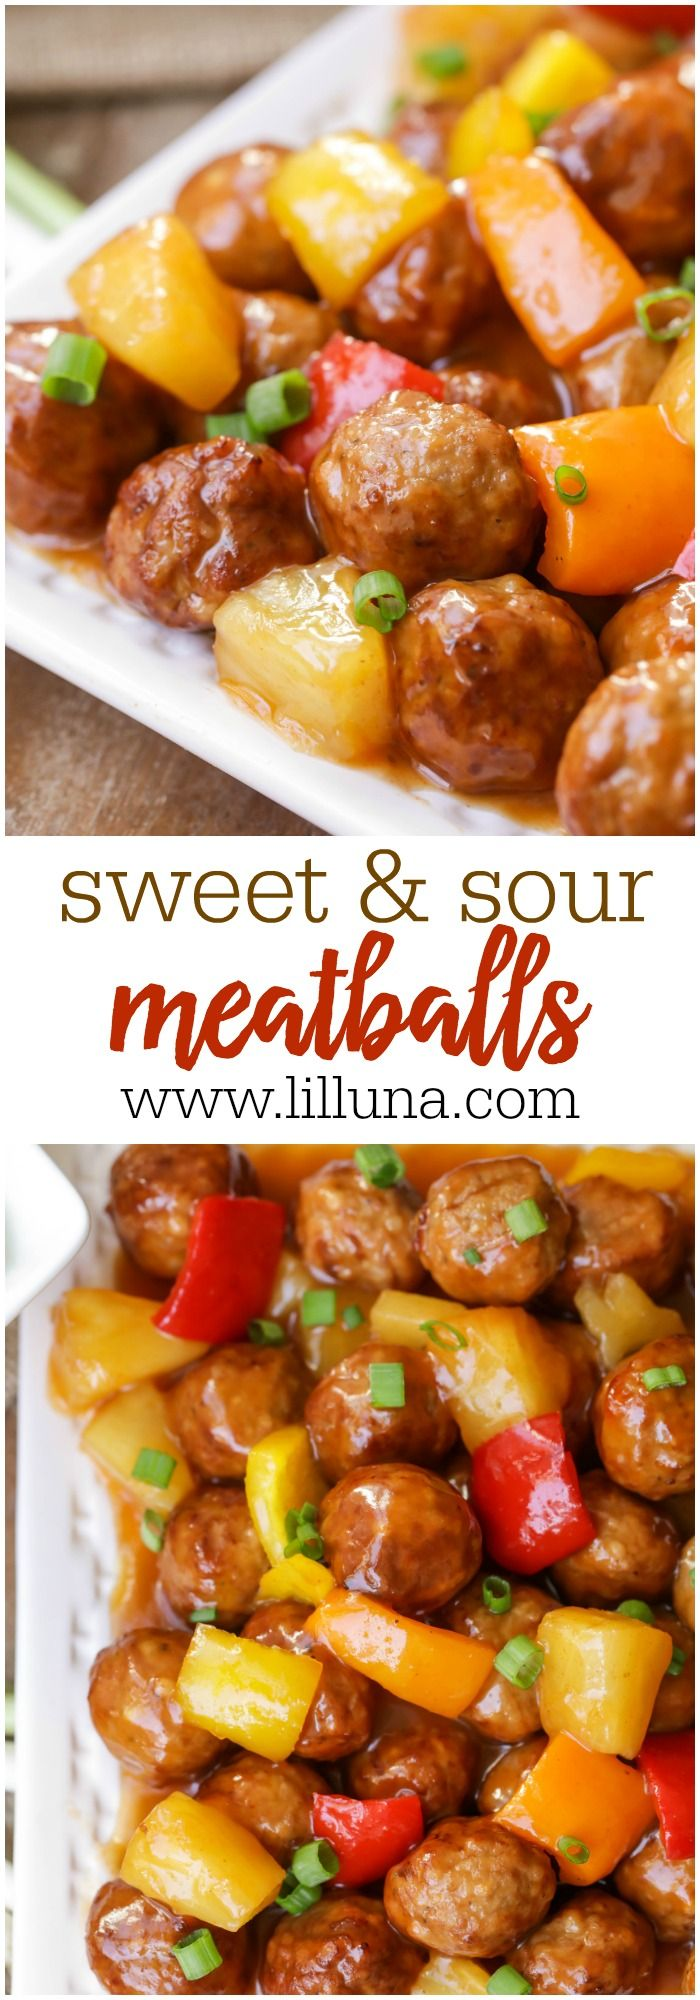 Sweet and Sour Meatballs - frozen meatballs and pineapple chunks covered in a DELICIOUS homemade sweet and sour sauce!! A recipe the whole family will love!